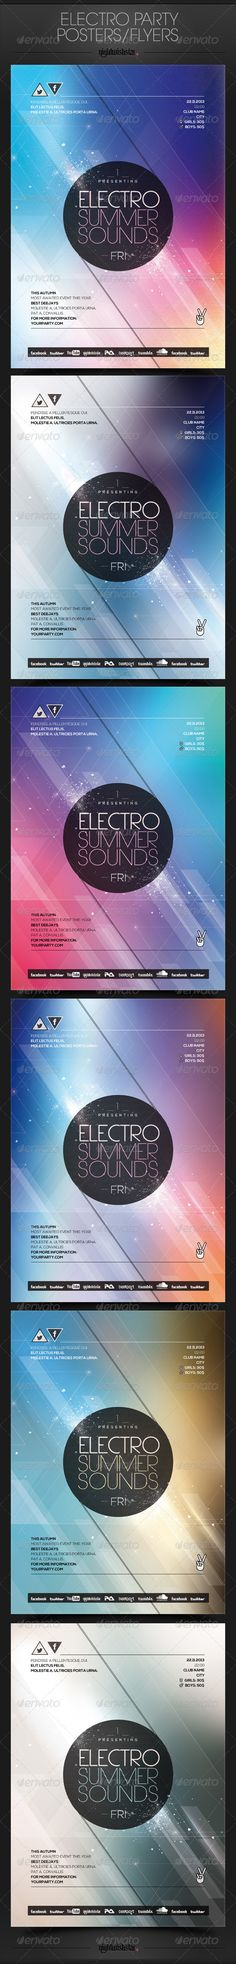 Electro Party Poster/Flyer - Clubs & Parties Events